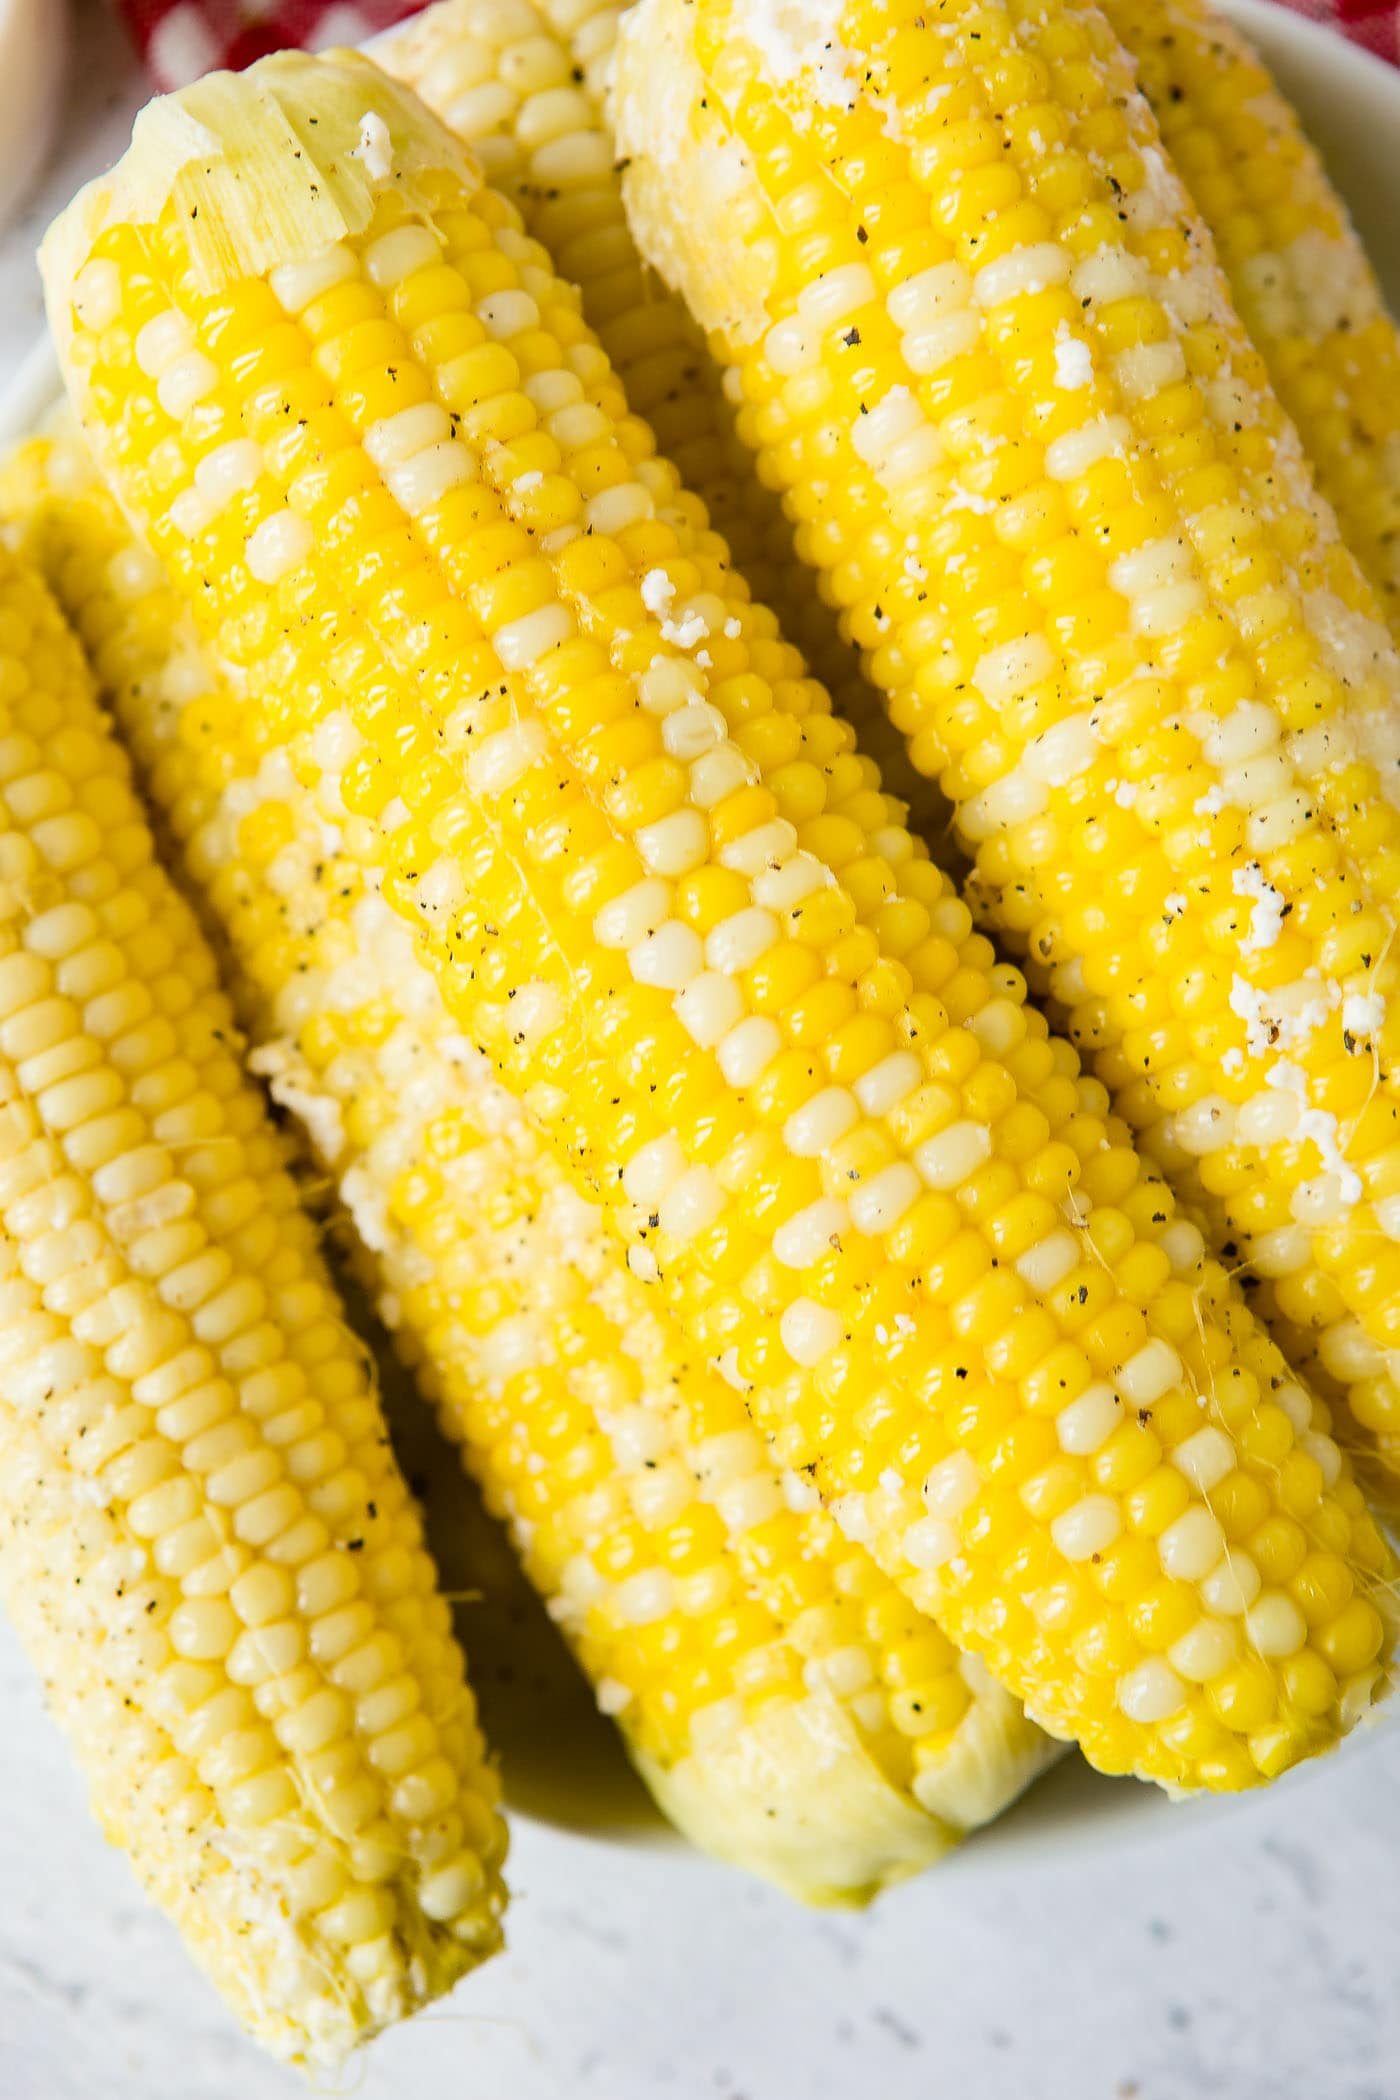 A close-up of four ears of cooked corn on the cob sprinkled with ground pepper.